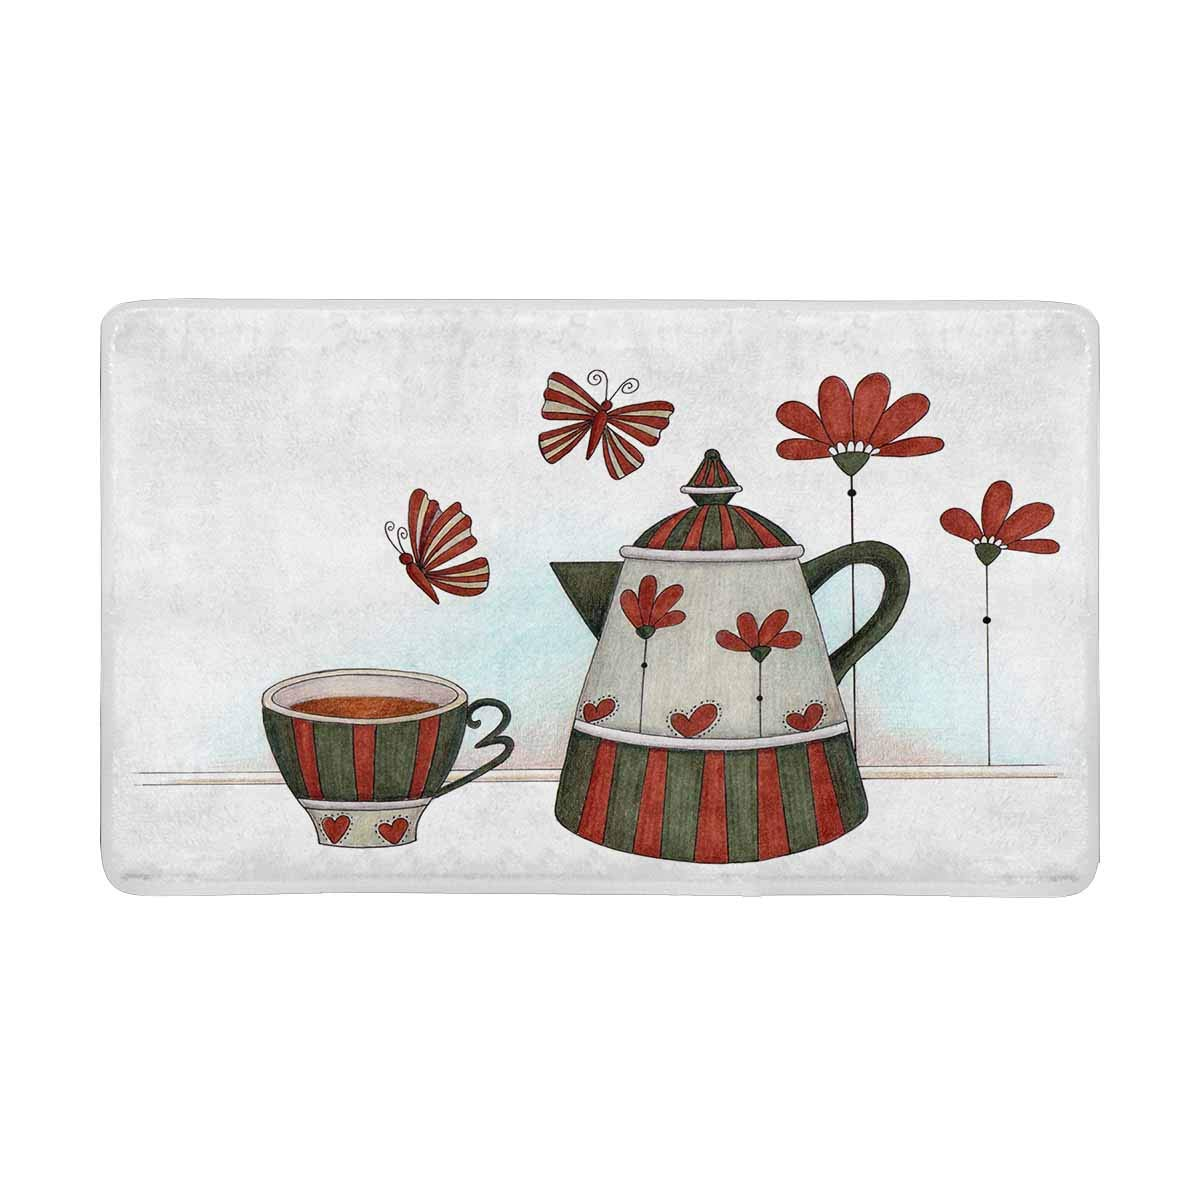 InterestPrint Cup and Teapot Country Style of Cup and Teapot Anti-Slip Door Mat Home Decor, Personalized Indoor Entrance Doormat Rubber Backing Extra Large 30 X 18 Inches